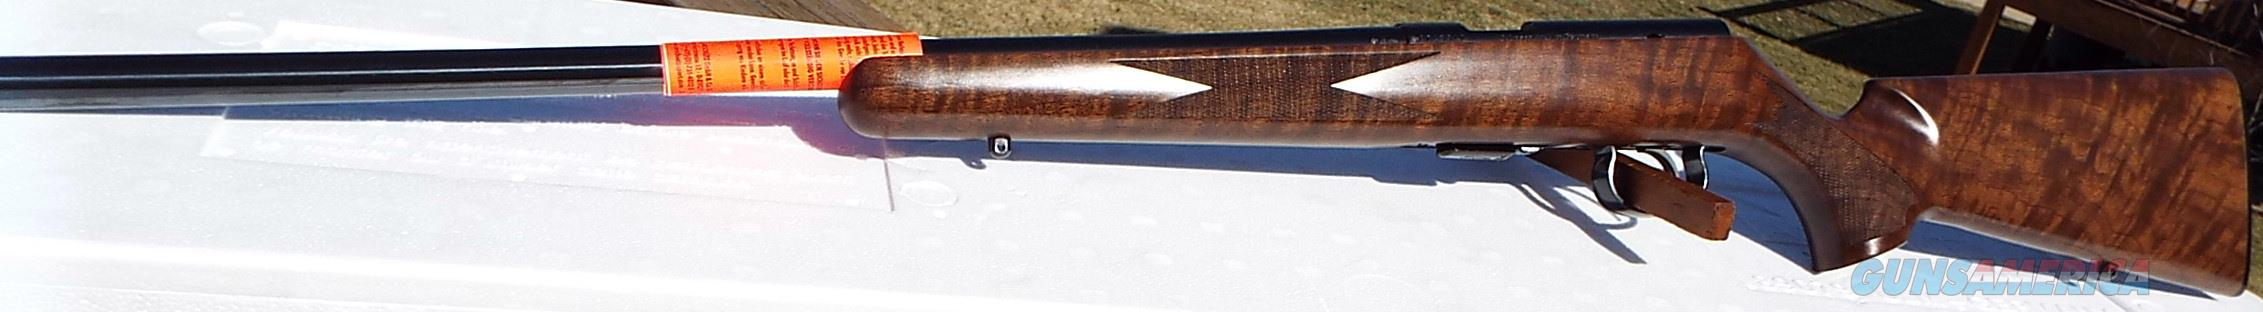 Anschutz 1502D HB Classic 17 Mach-2  New!    LAYAWAY OPTION   17M2   1502      17HM2     2402095  Guns > Rifles > Anschutz Rifles